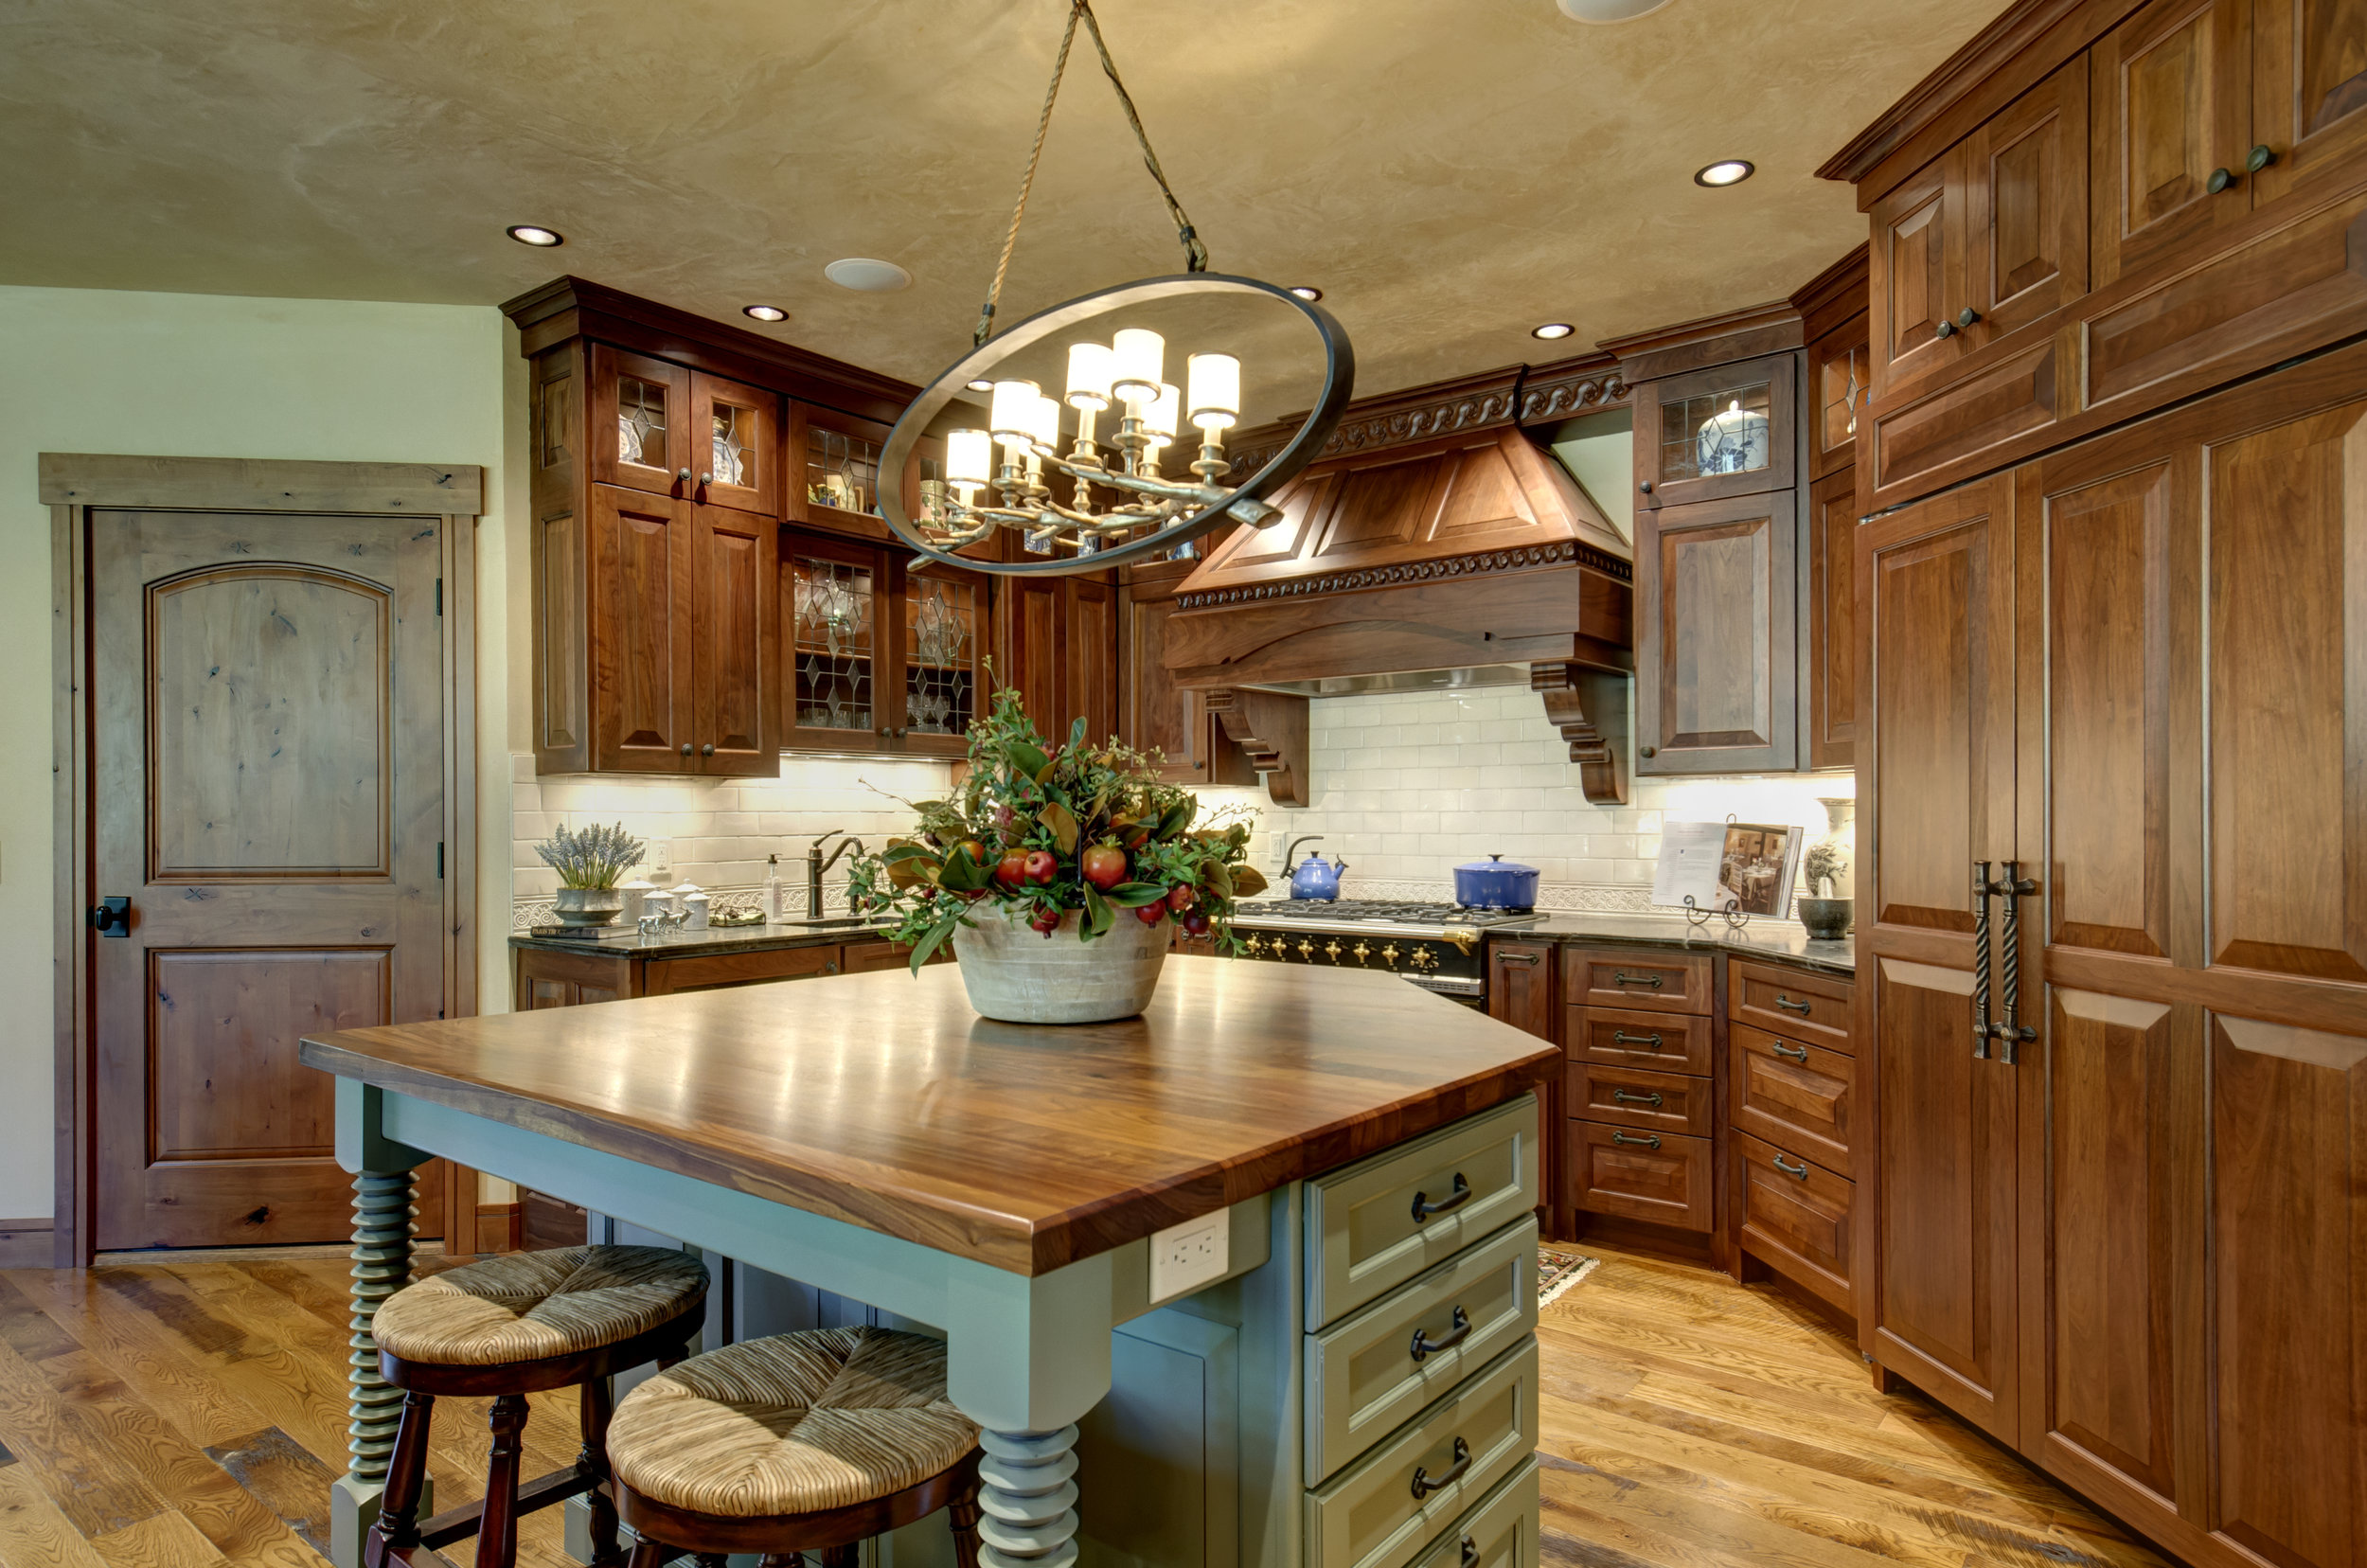 handcrafted cabinetry.jpg